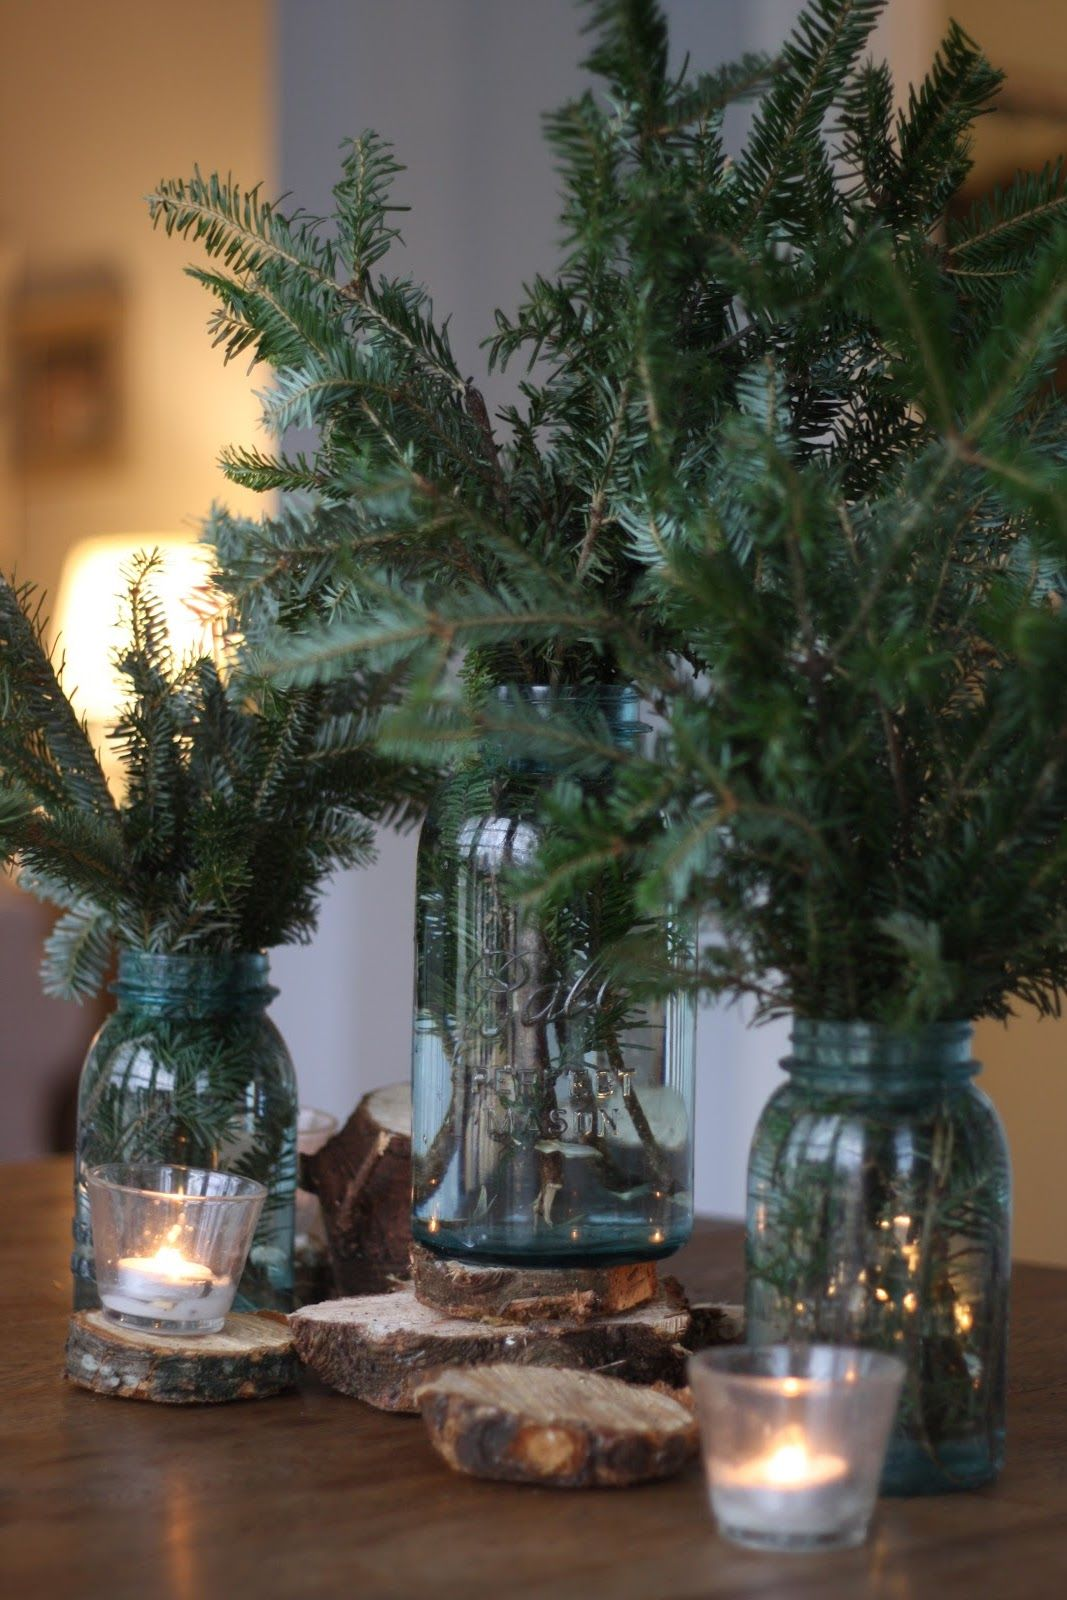 Sapin Deja Decore Christmas Decor Pine Branches In Mason Jars On Wood Coasters